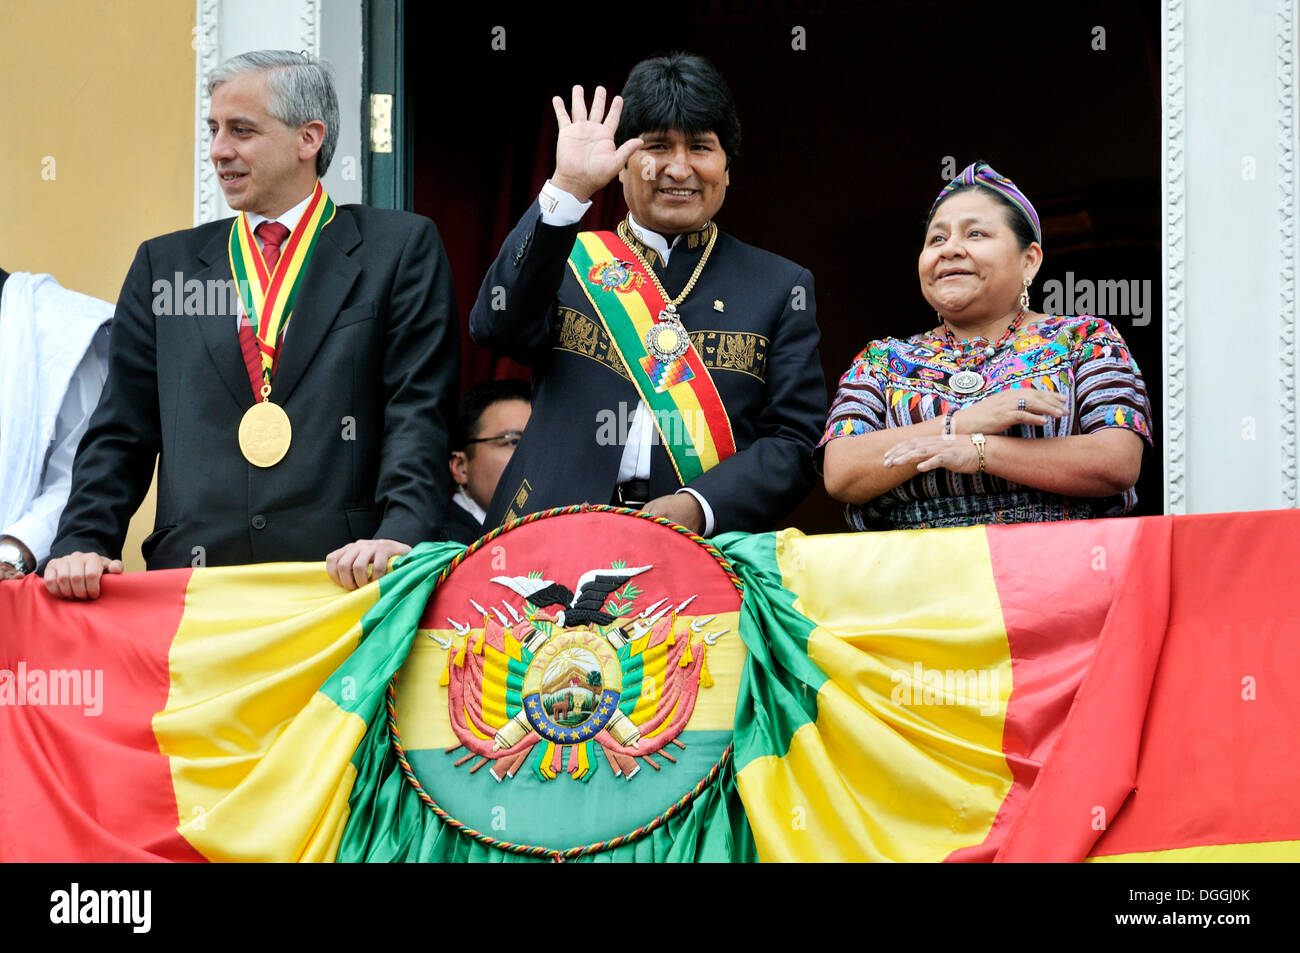 President Evo Morales Ayma greeting his supporters from the balcony of the government palace during his re-election ceremony, - Stock Image